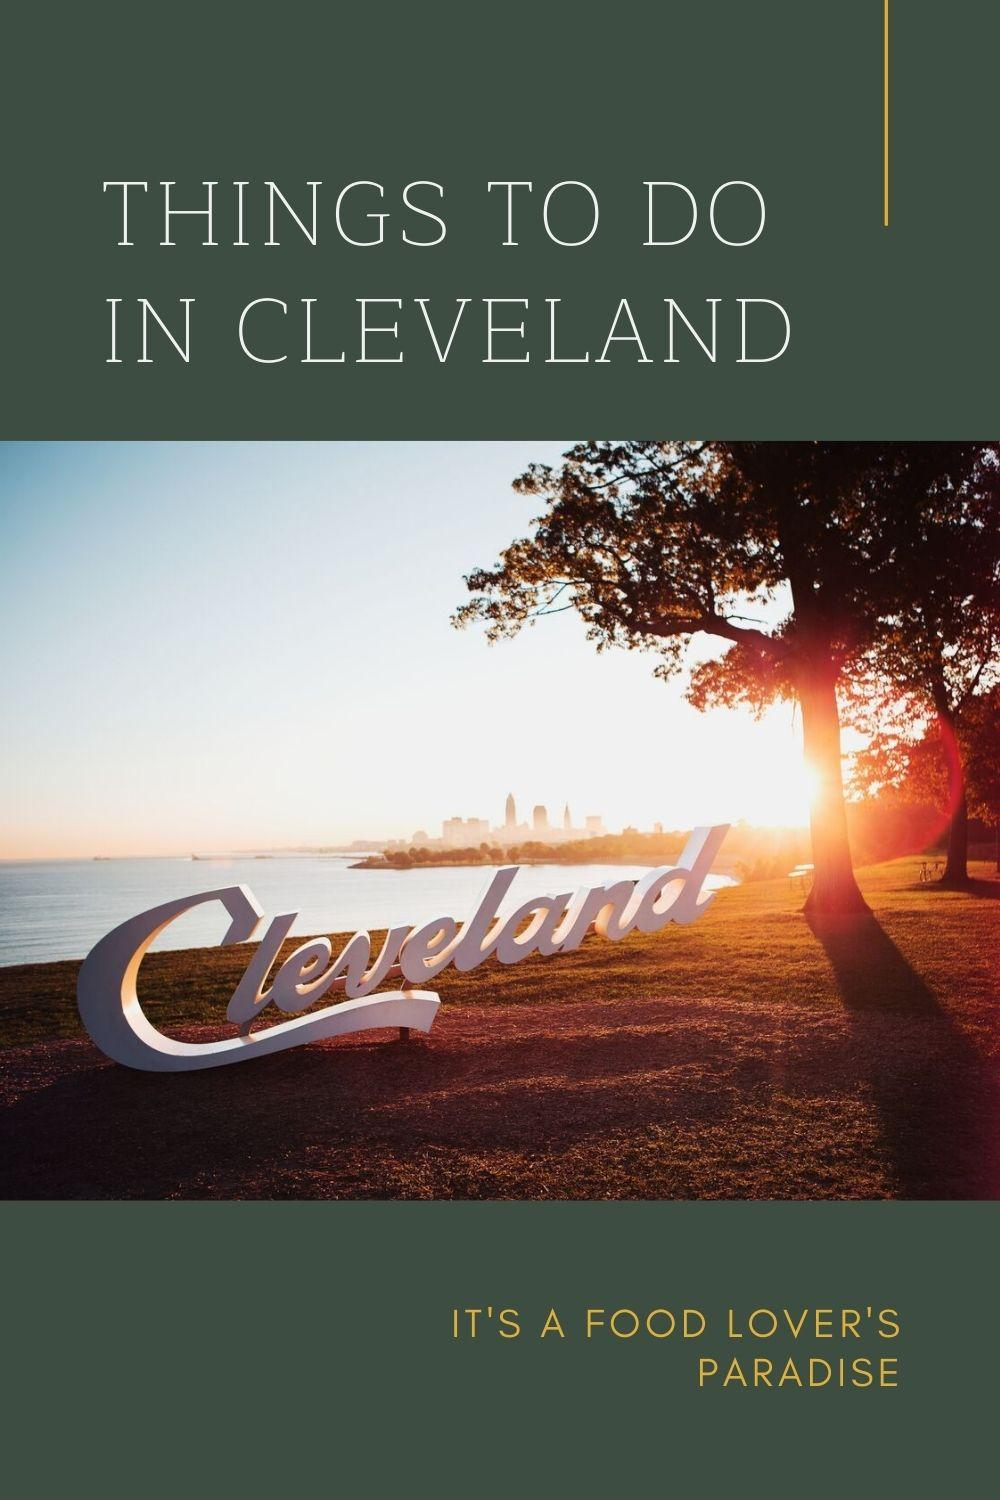 Things to do in Cleveland graphic